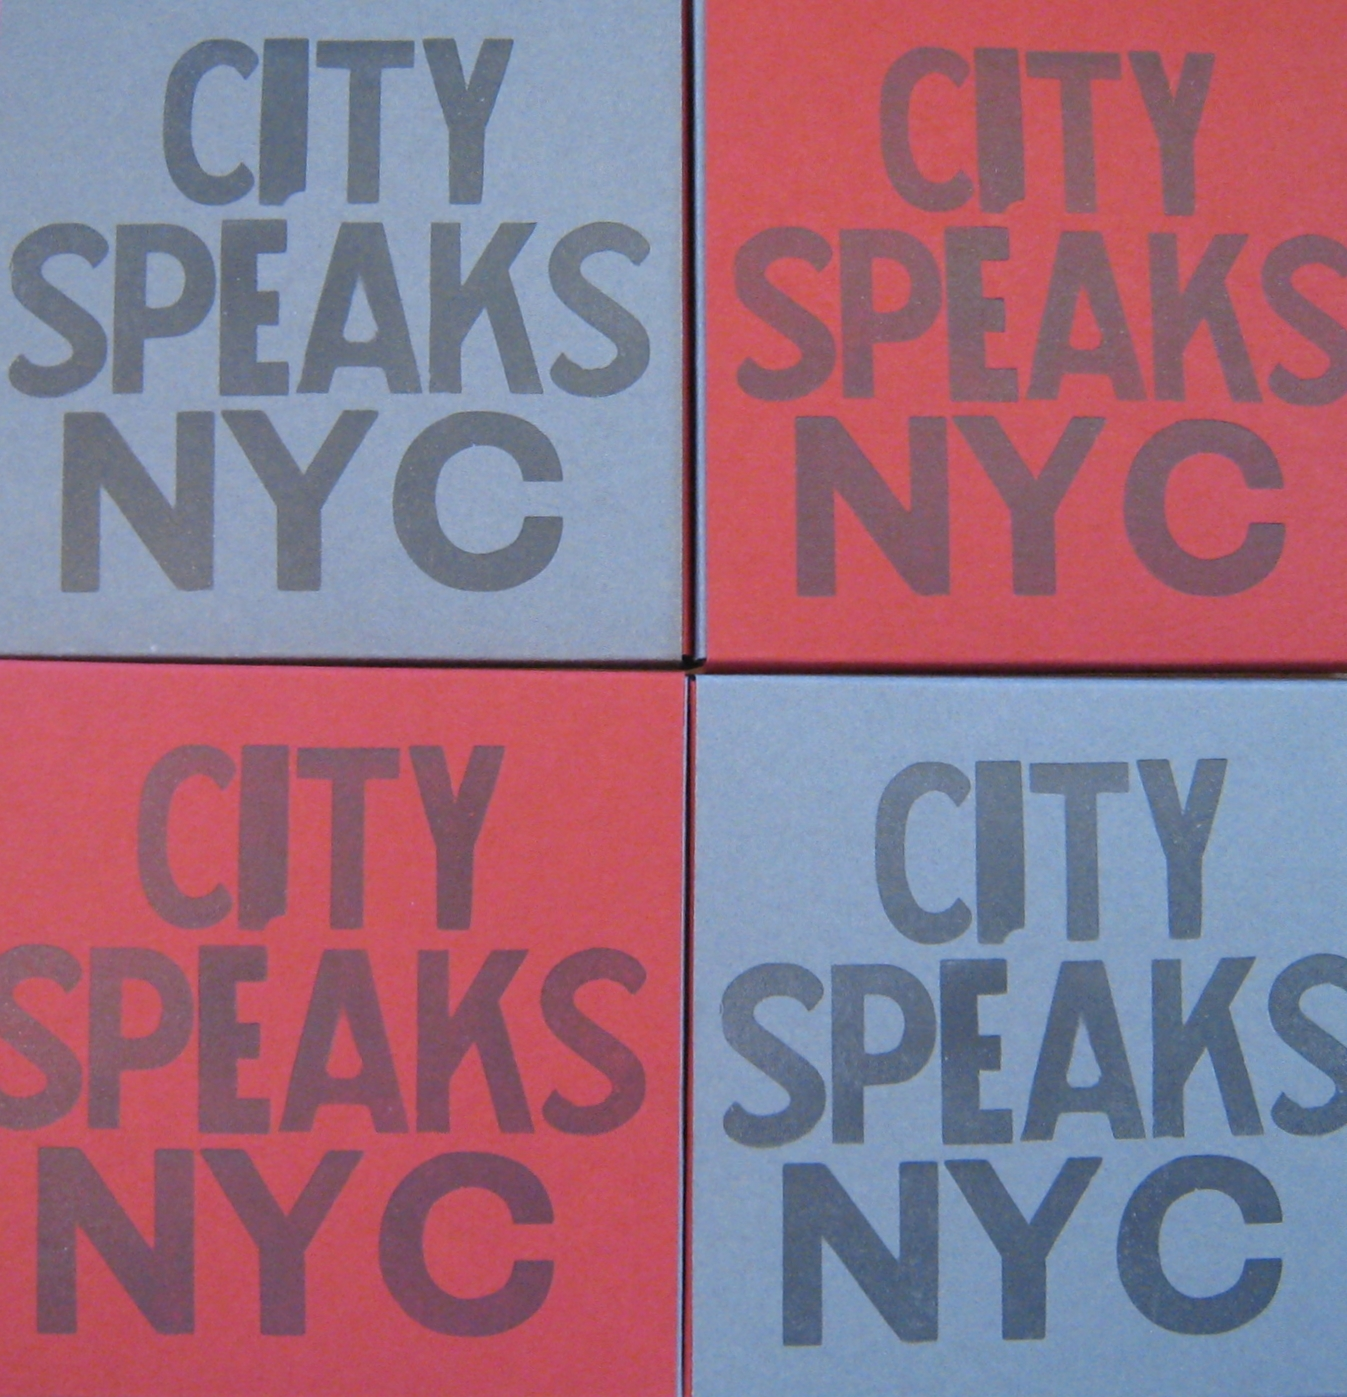 CitySpeaks NYC - Covers